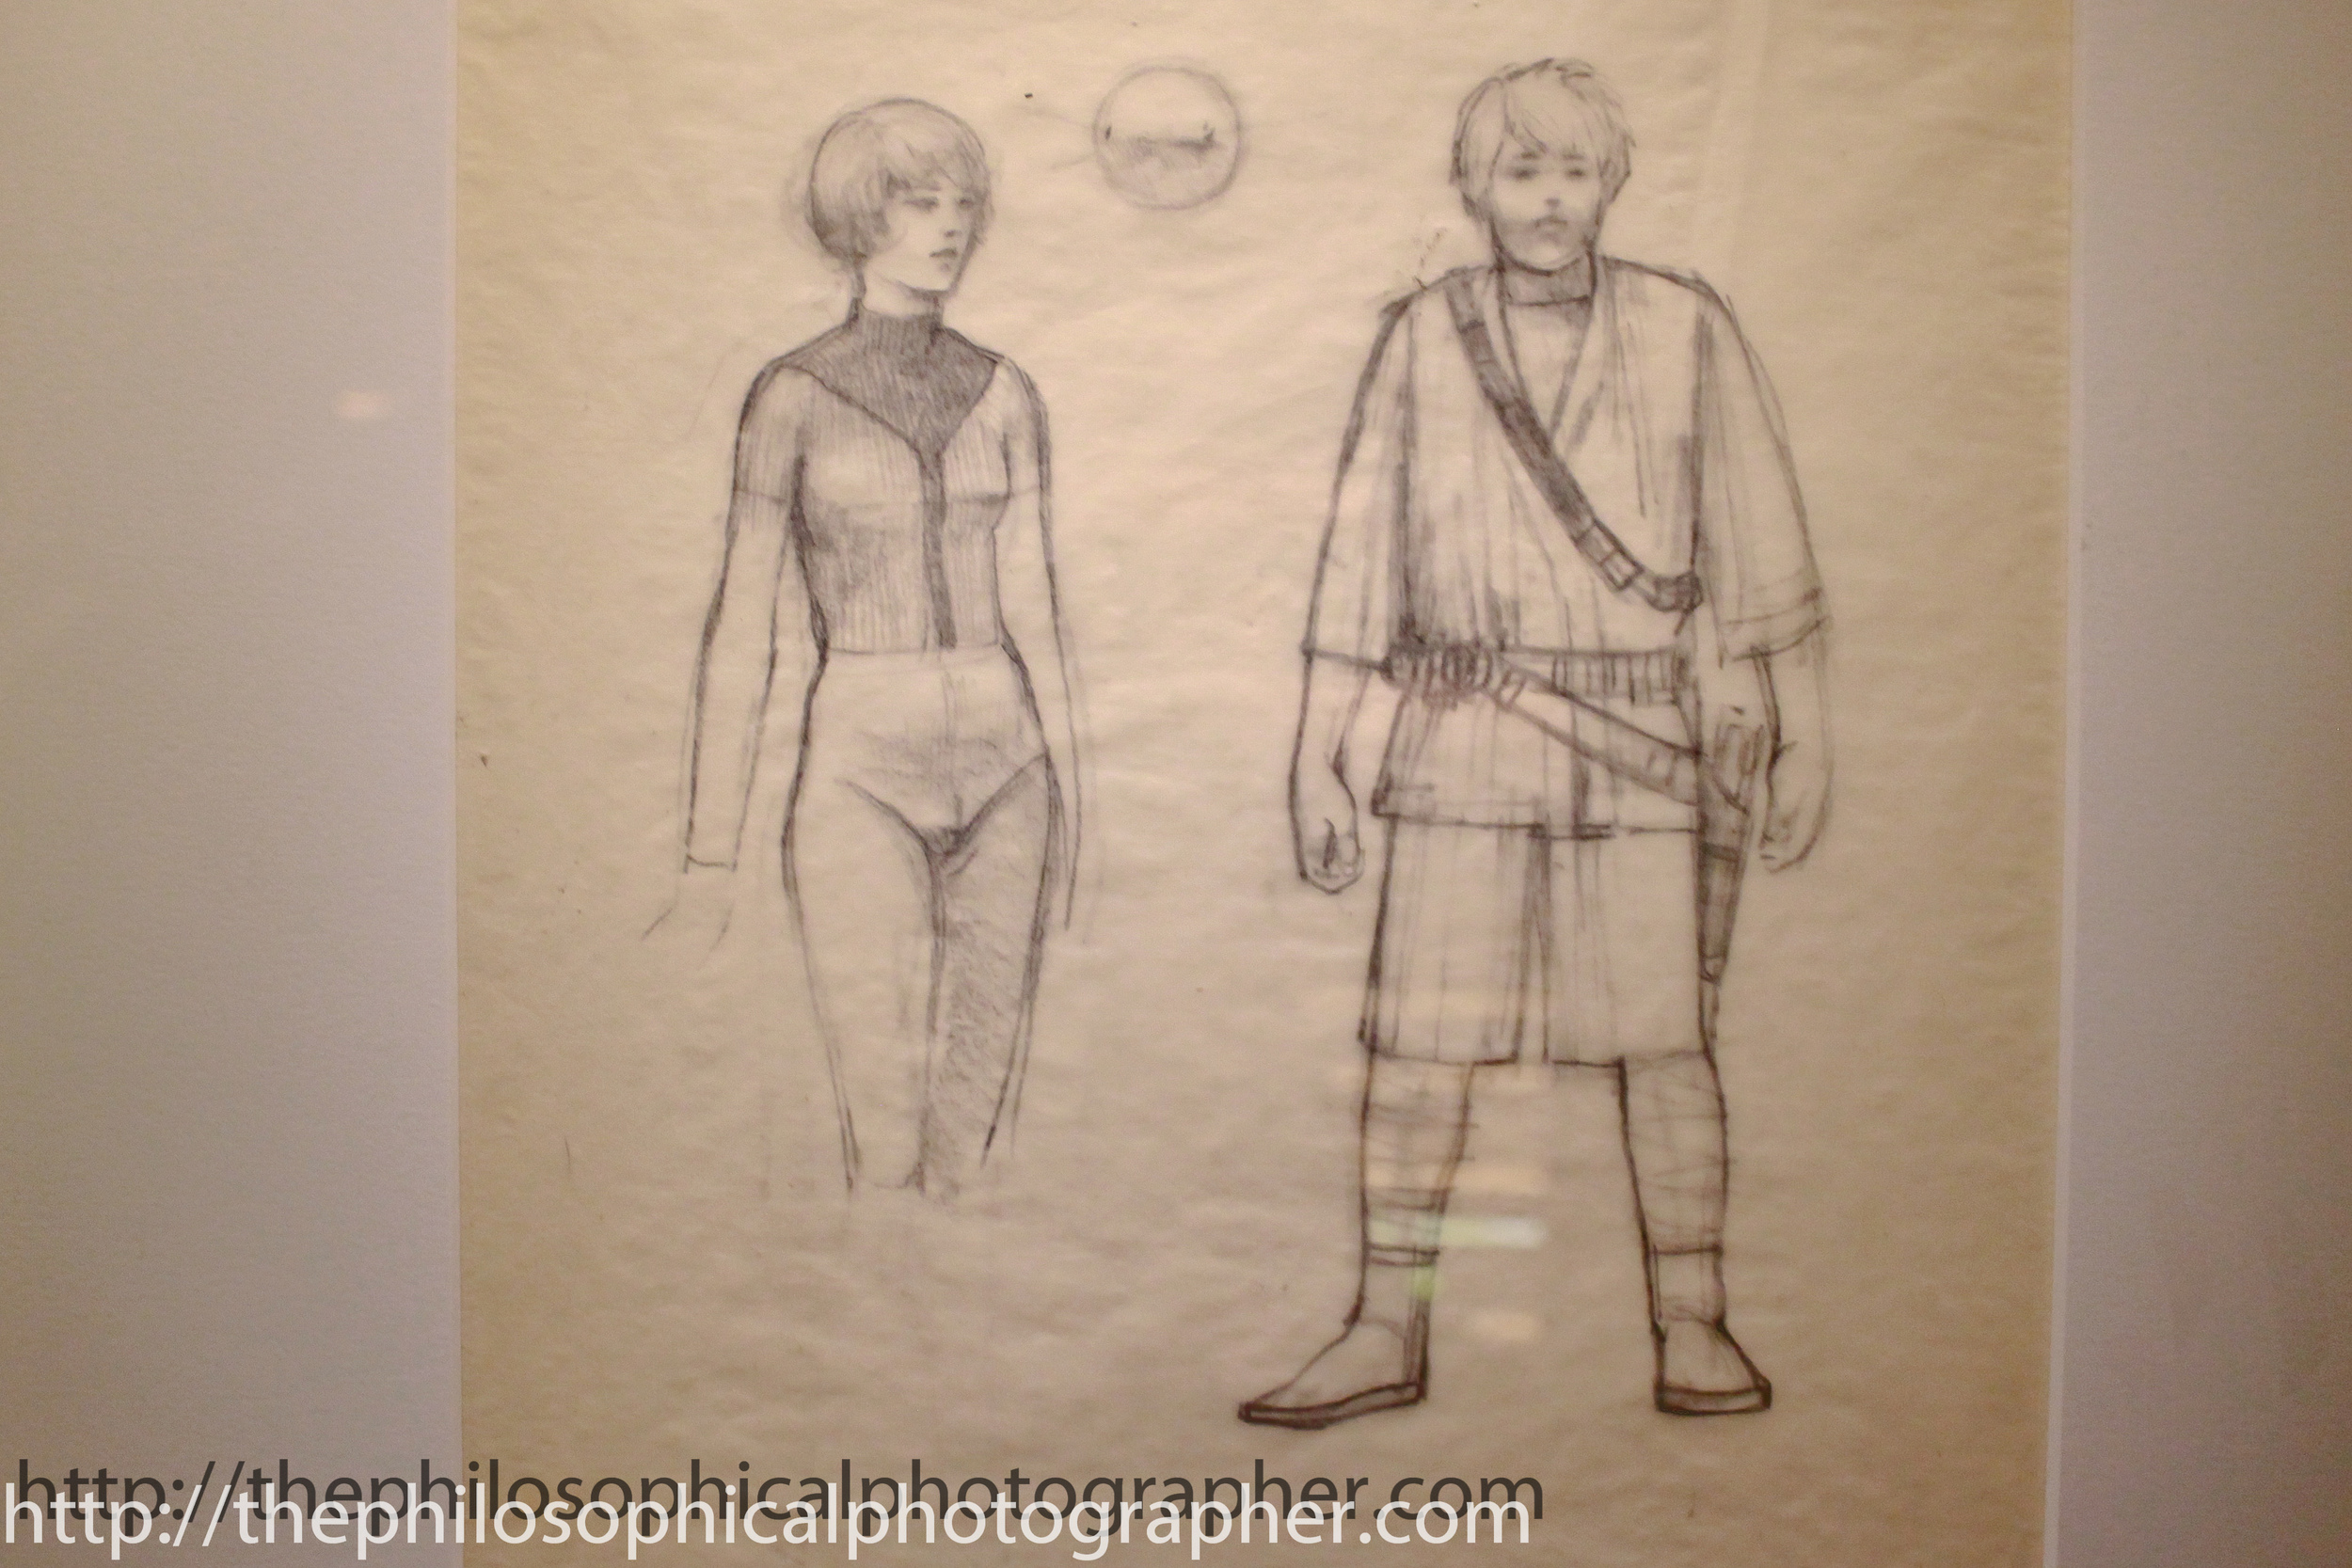 Early Luke and Leia sketches